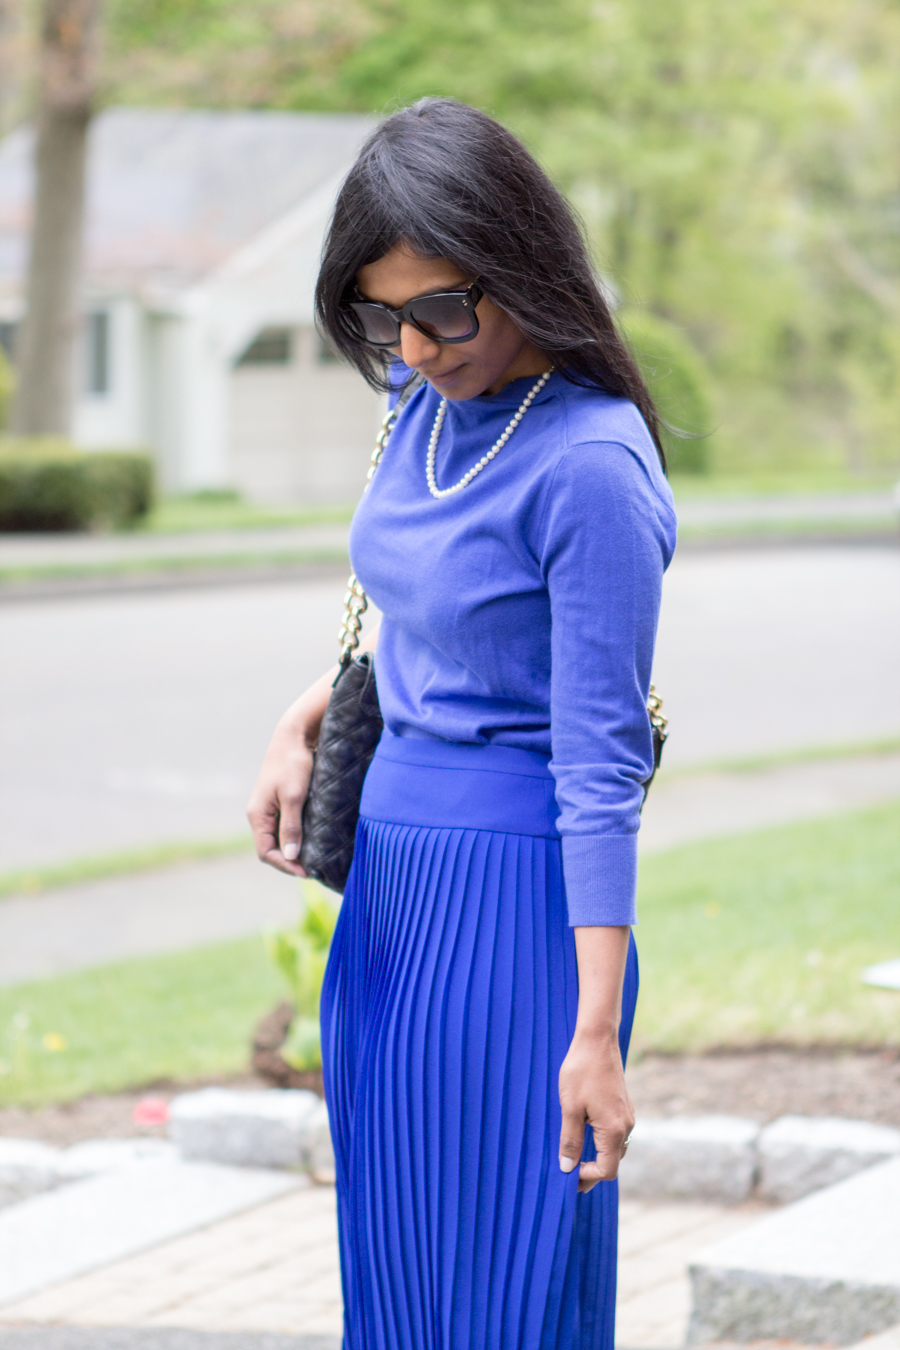 spring style, business casual, work outfit, ladylike, elegant, midiskirt, pleated skirt, cobalt blue, royal blue, blue pumps, sole society, how-to, styling tips, j.crew style, utility jacket, cargo jacket, mommy style, petite fashion, lookbook